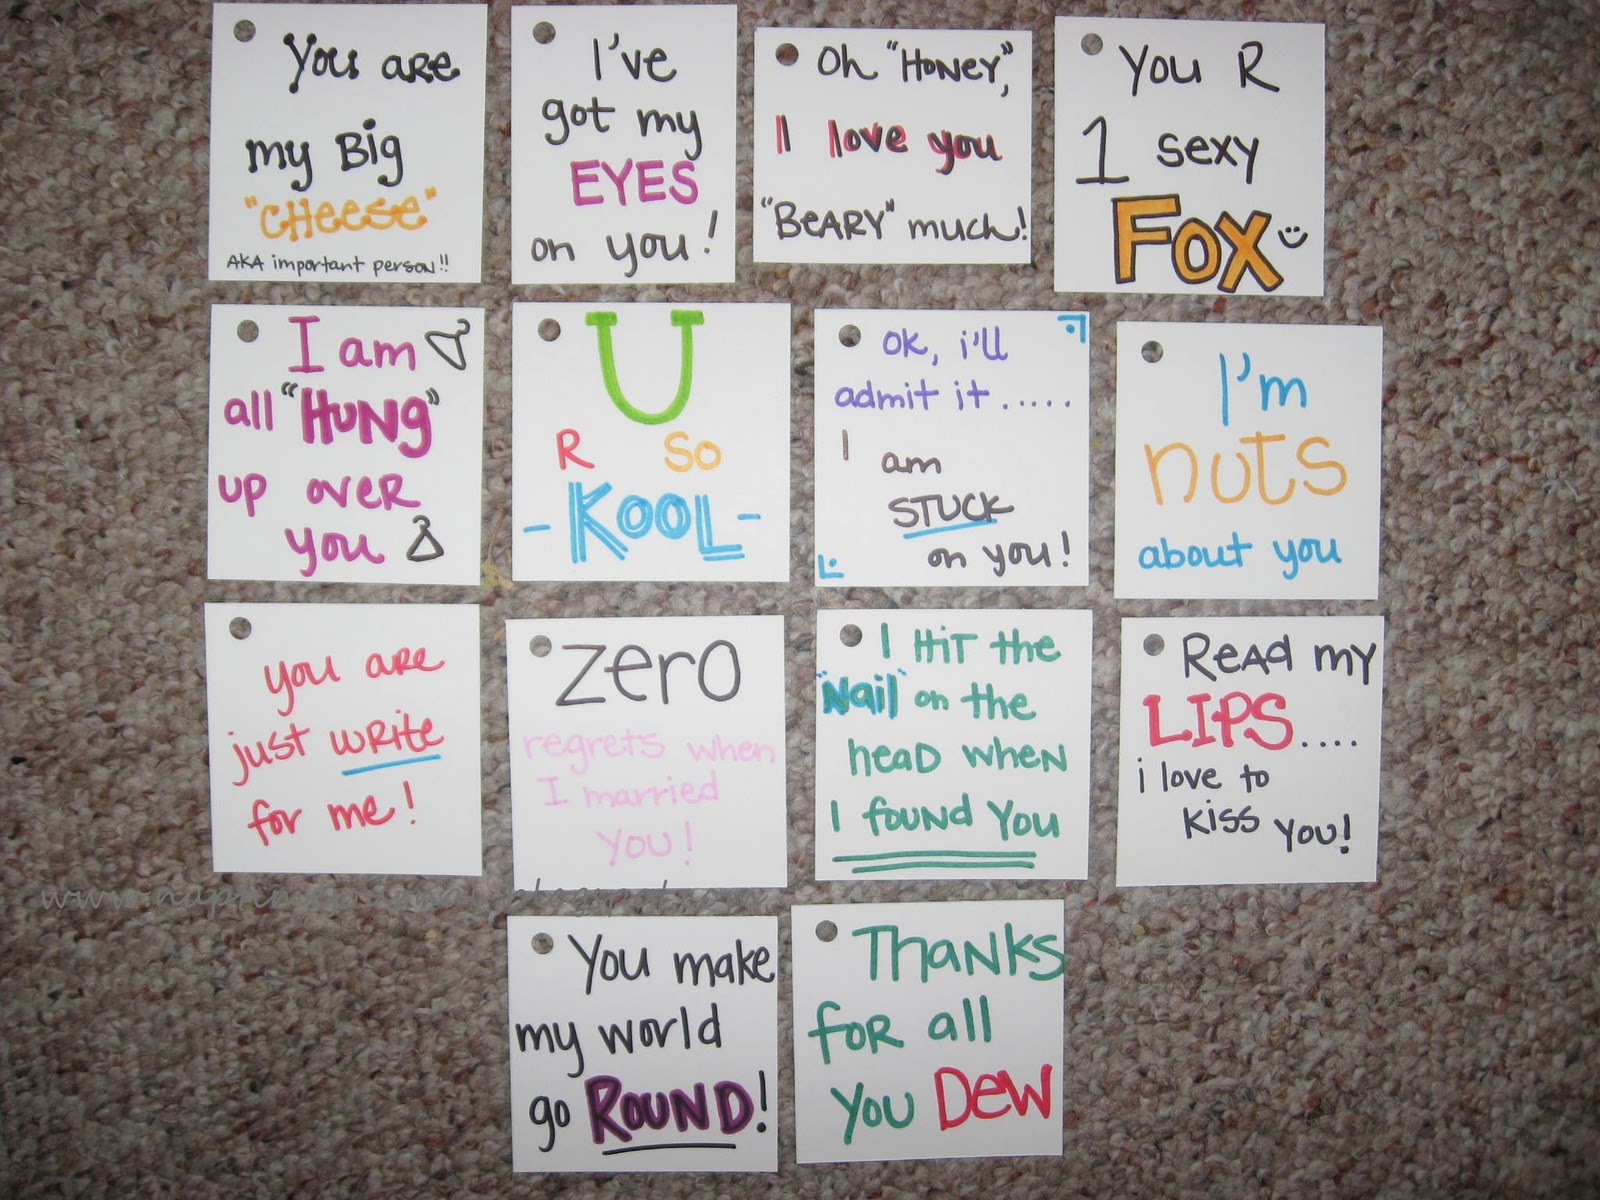 14 days of valentines for your hubby - 14 Days Of Valentines For Him